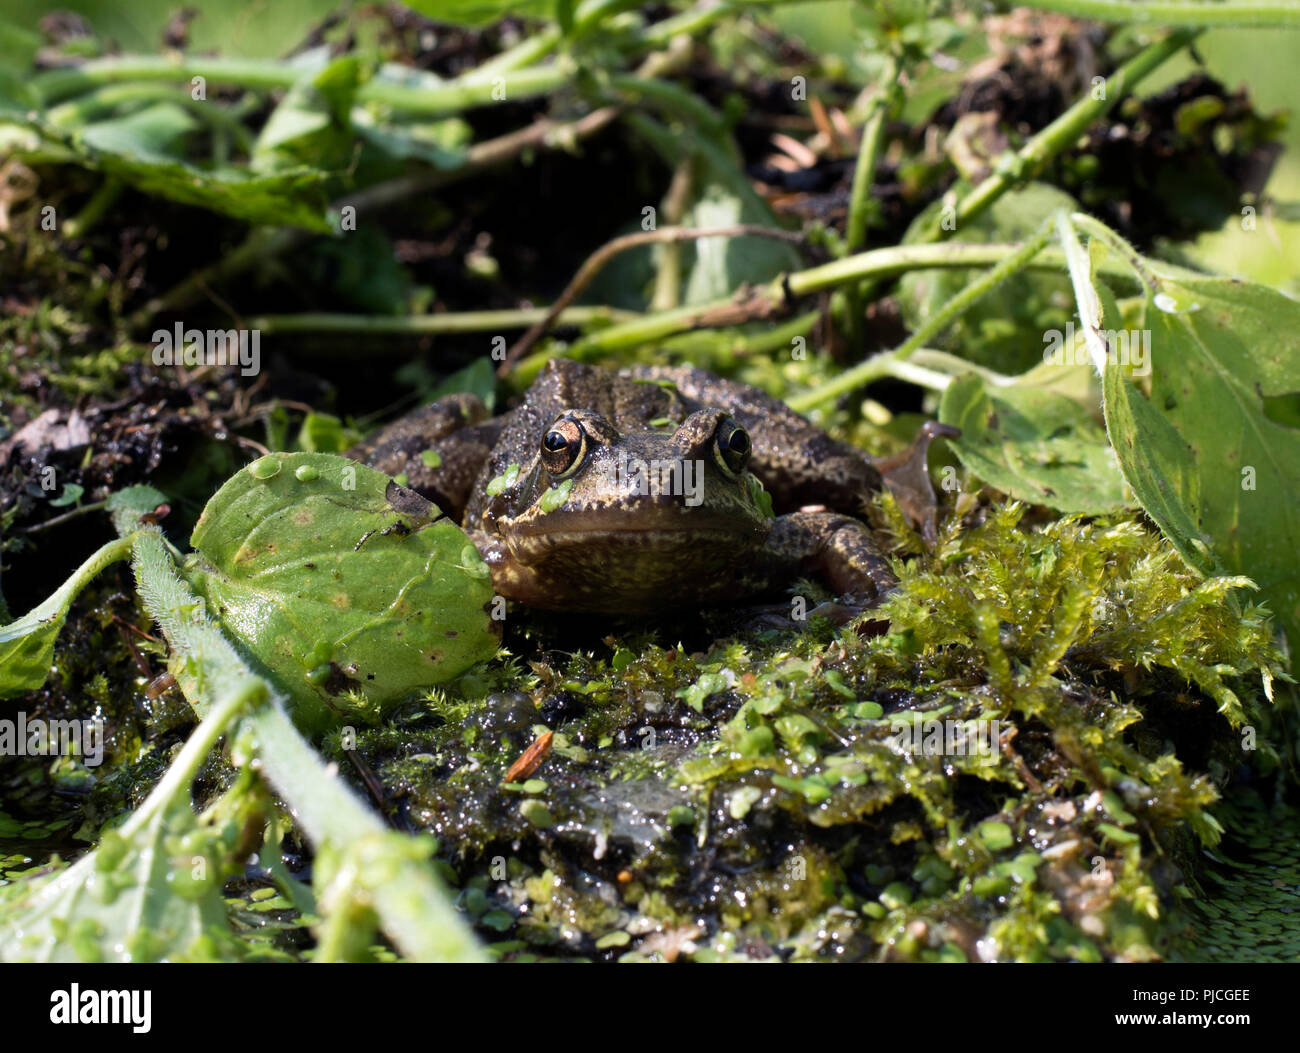 Eye level face on portrait of European common frog, Rana temporaria, sitting on rock surrounded by water plants. Stock Photo